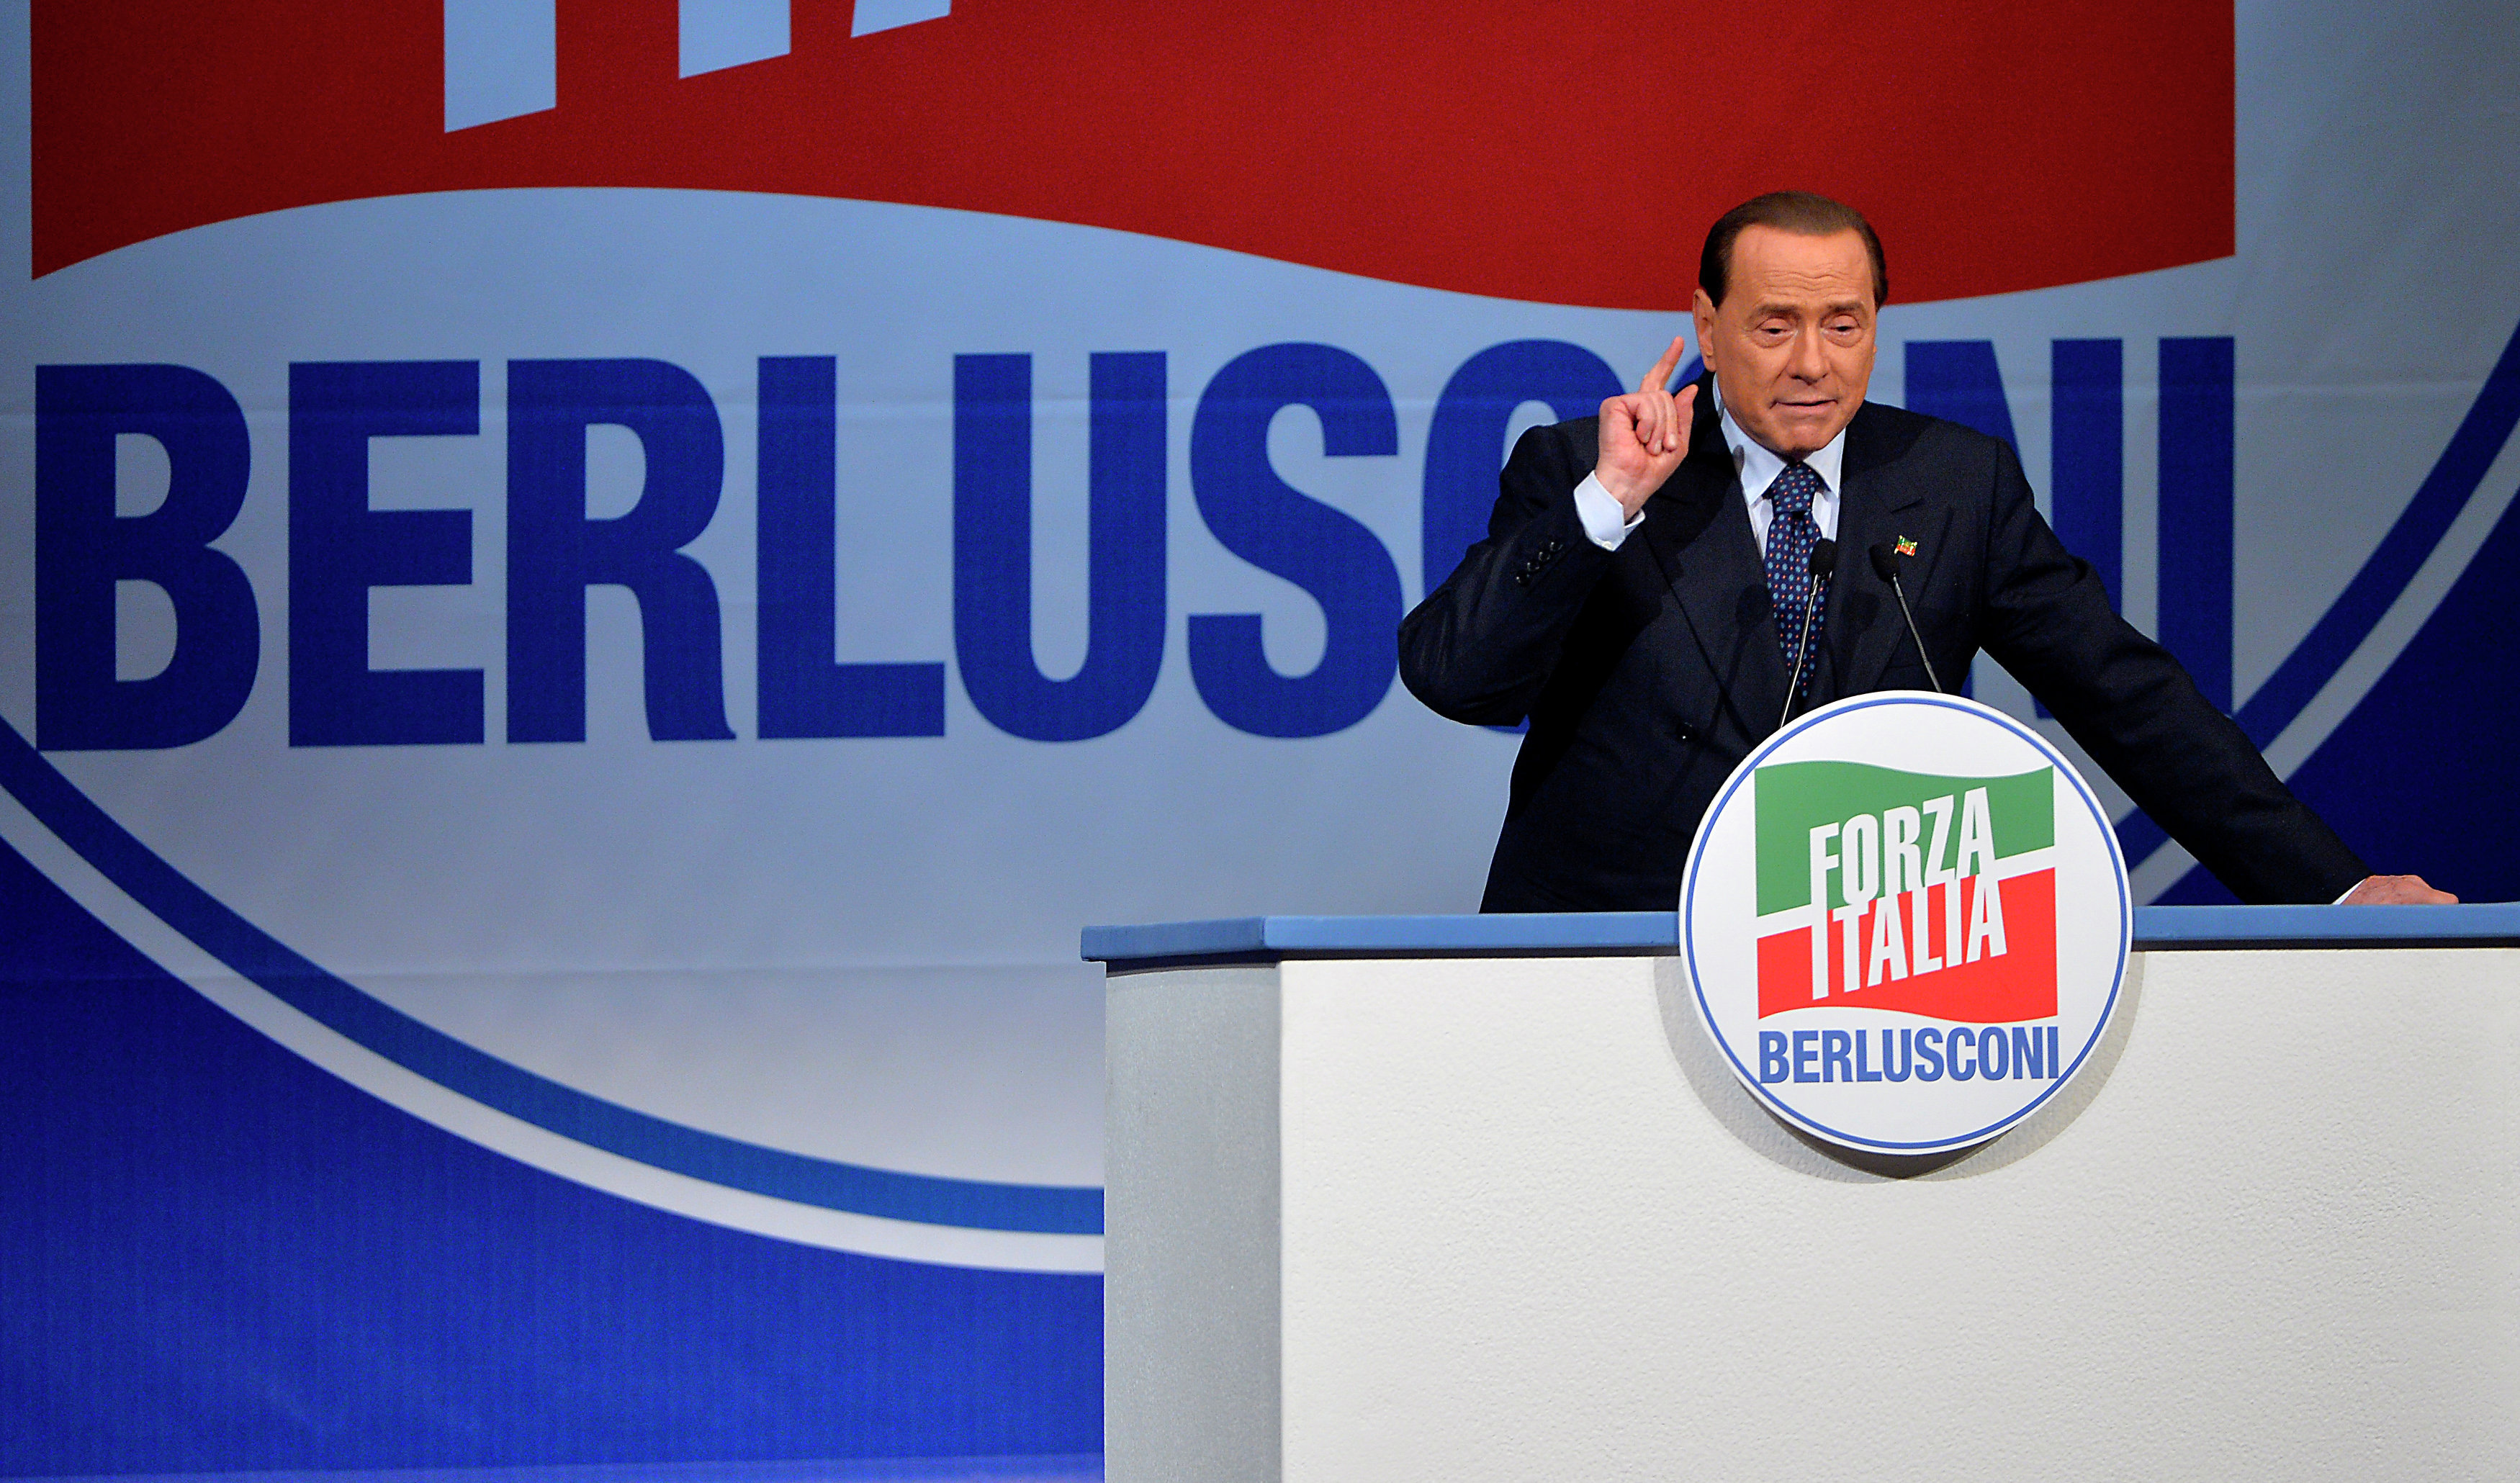 Former Italian Prime Minister and president of the Italian center-right Forza Italia (FI) party, Silvio Berlusconi gives a speech on May 22, 2014 in Rome